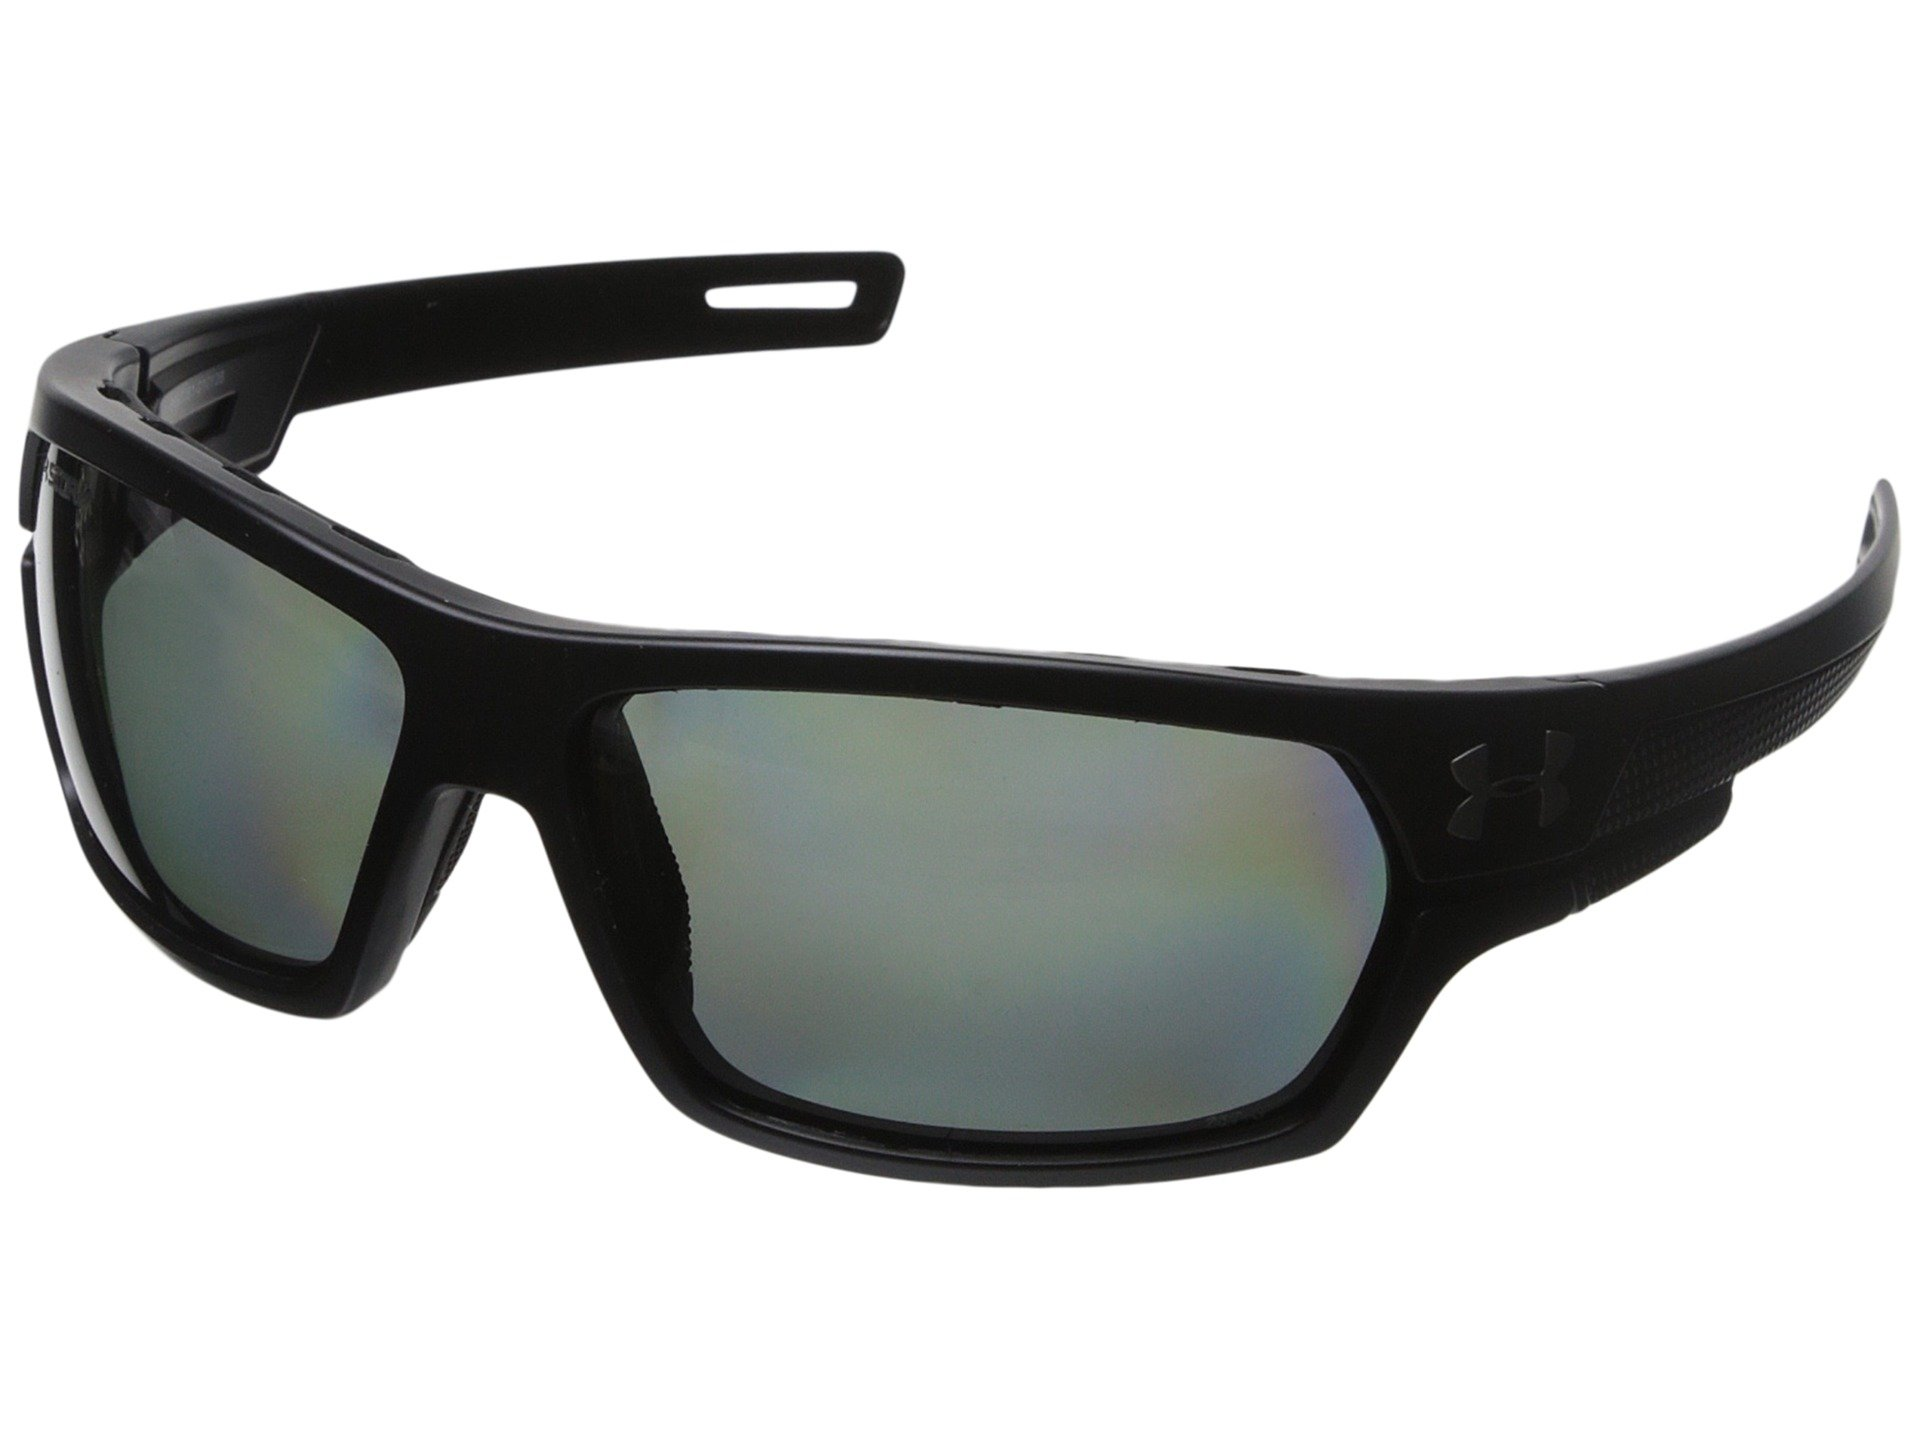 0271c07247 Under Armour Sunglasses + FREE SHIPPING